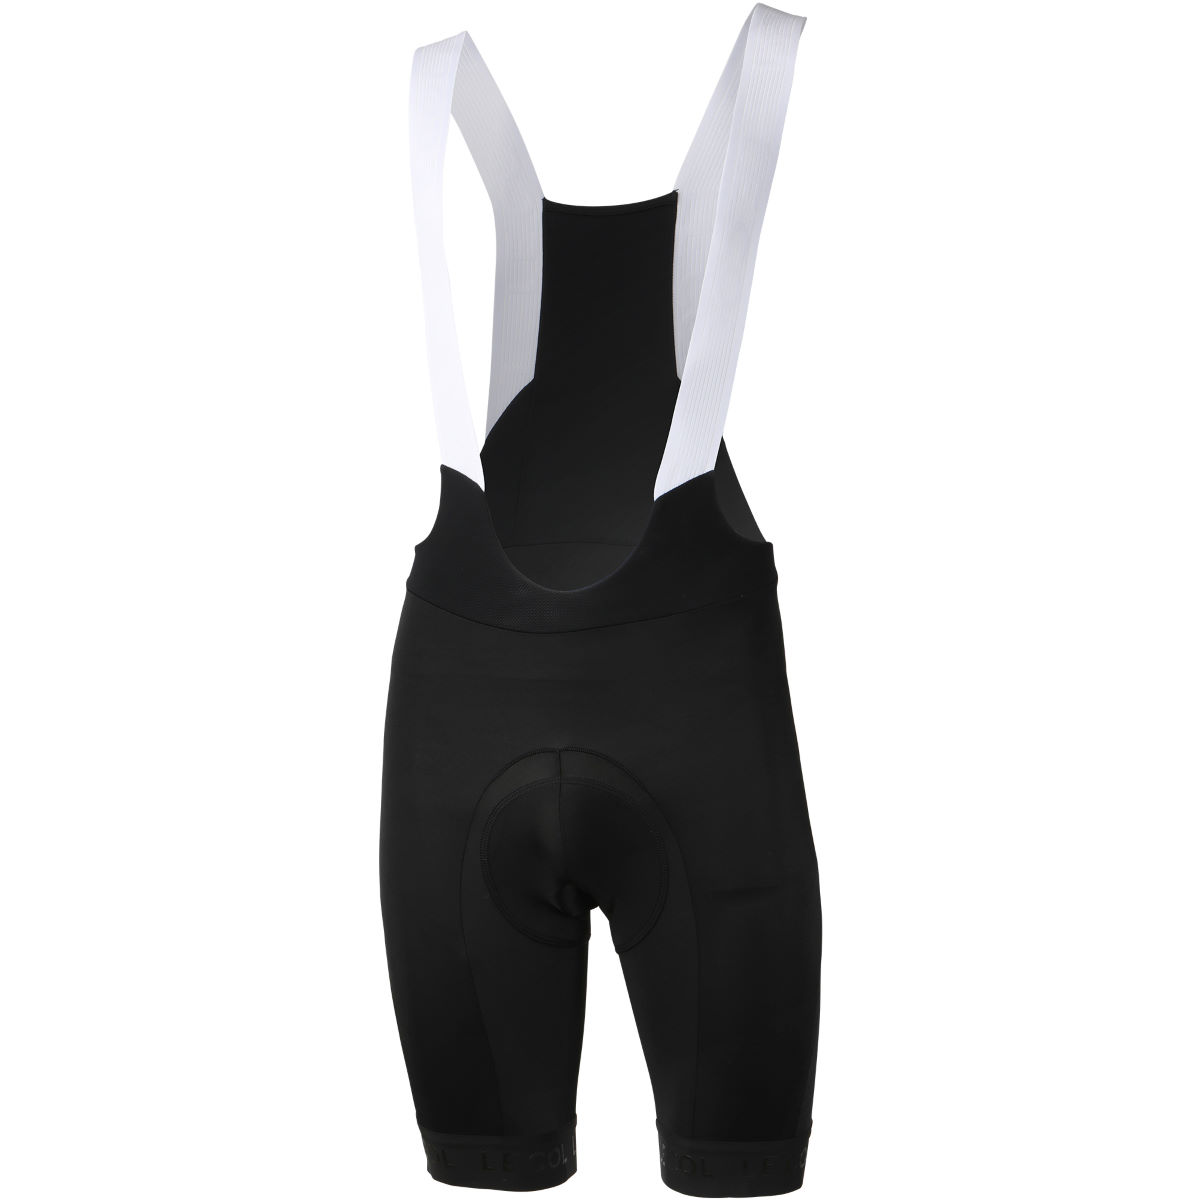 Le Col Le Col Hors Categorie Gold Edition Bib Shorts   Bib Shorts